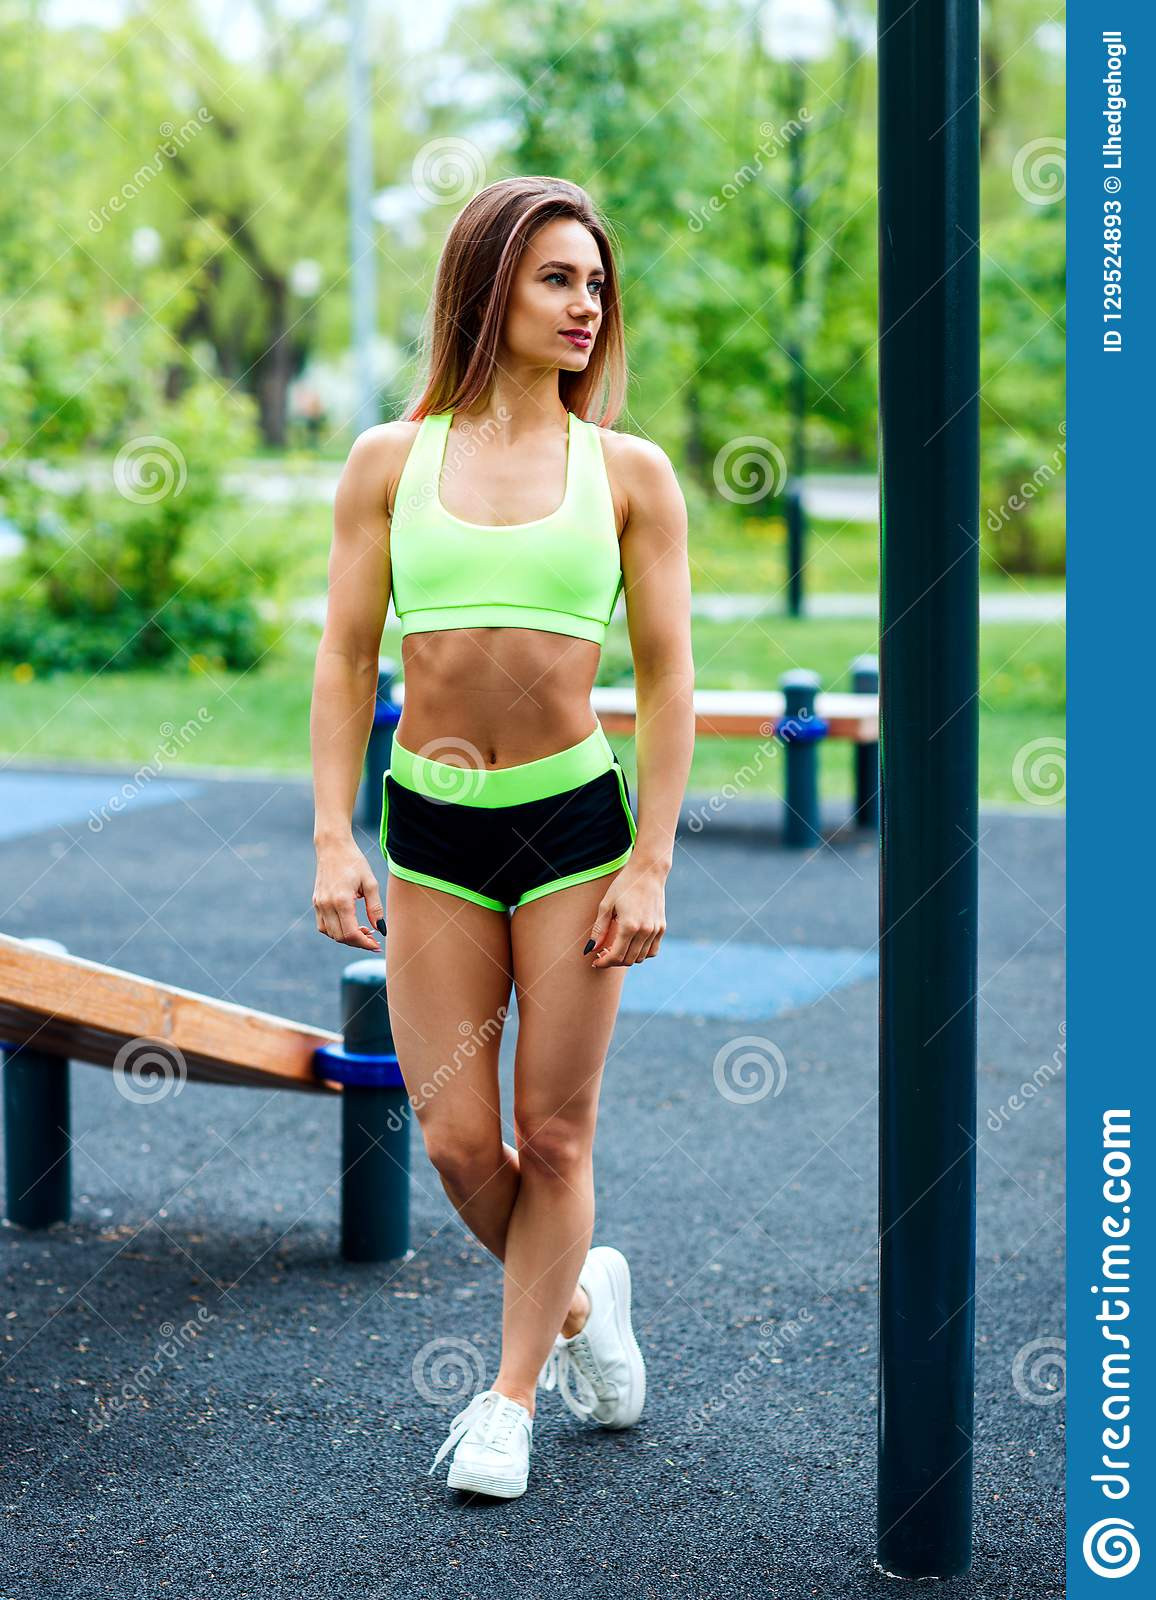 Sporty woman with perfect athletic body posing on sportsground.